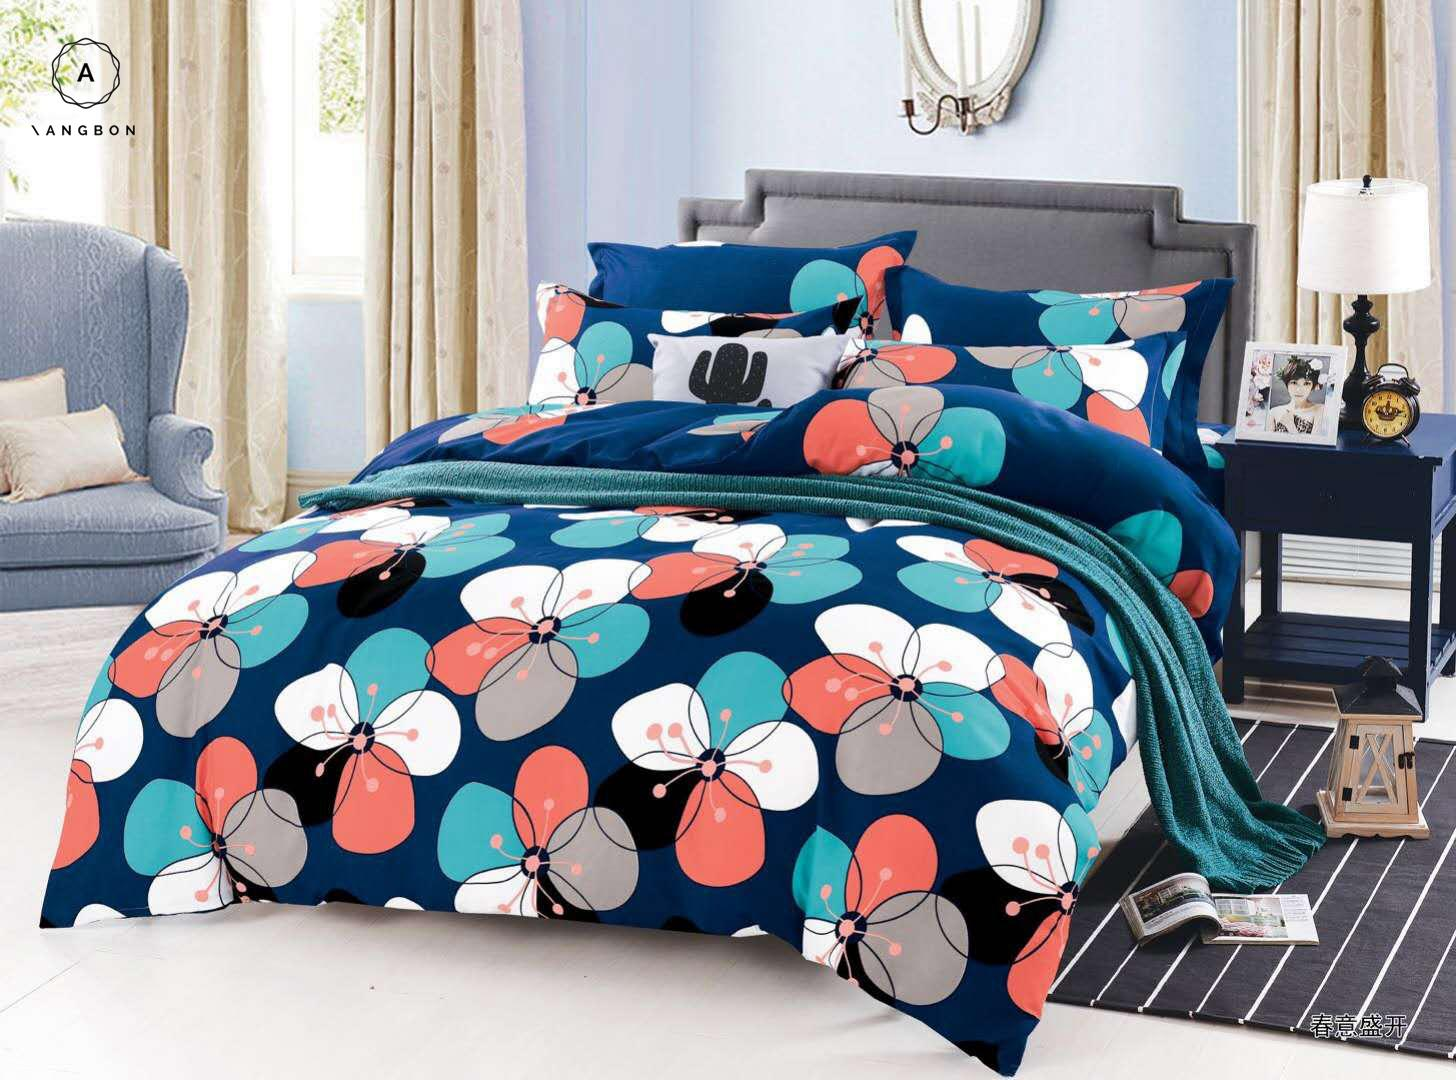 18335bf79422 Angbon 3in1 King Size Bedding Bed Sheet Set 72*75+7.8